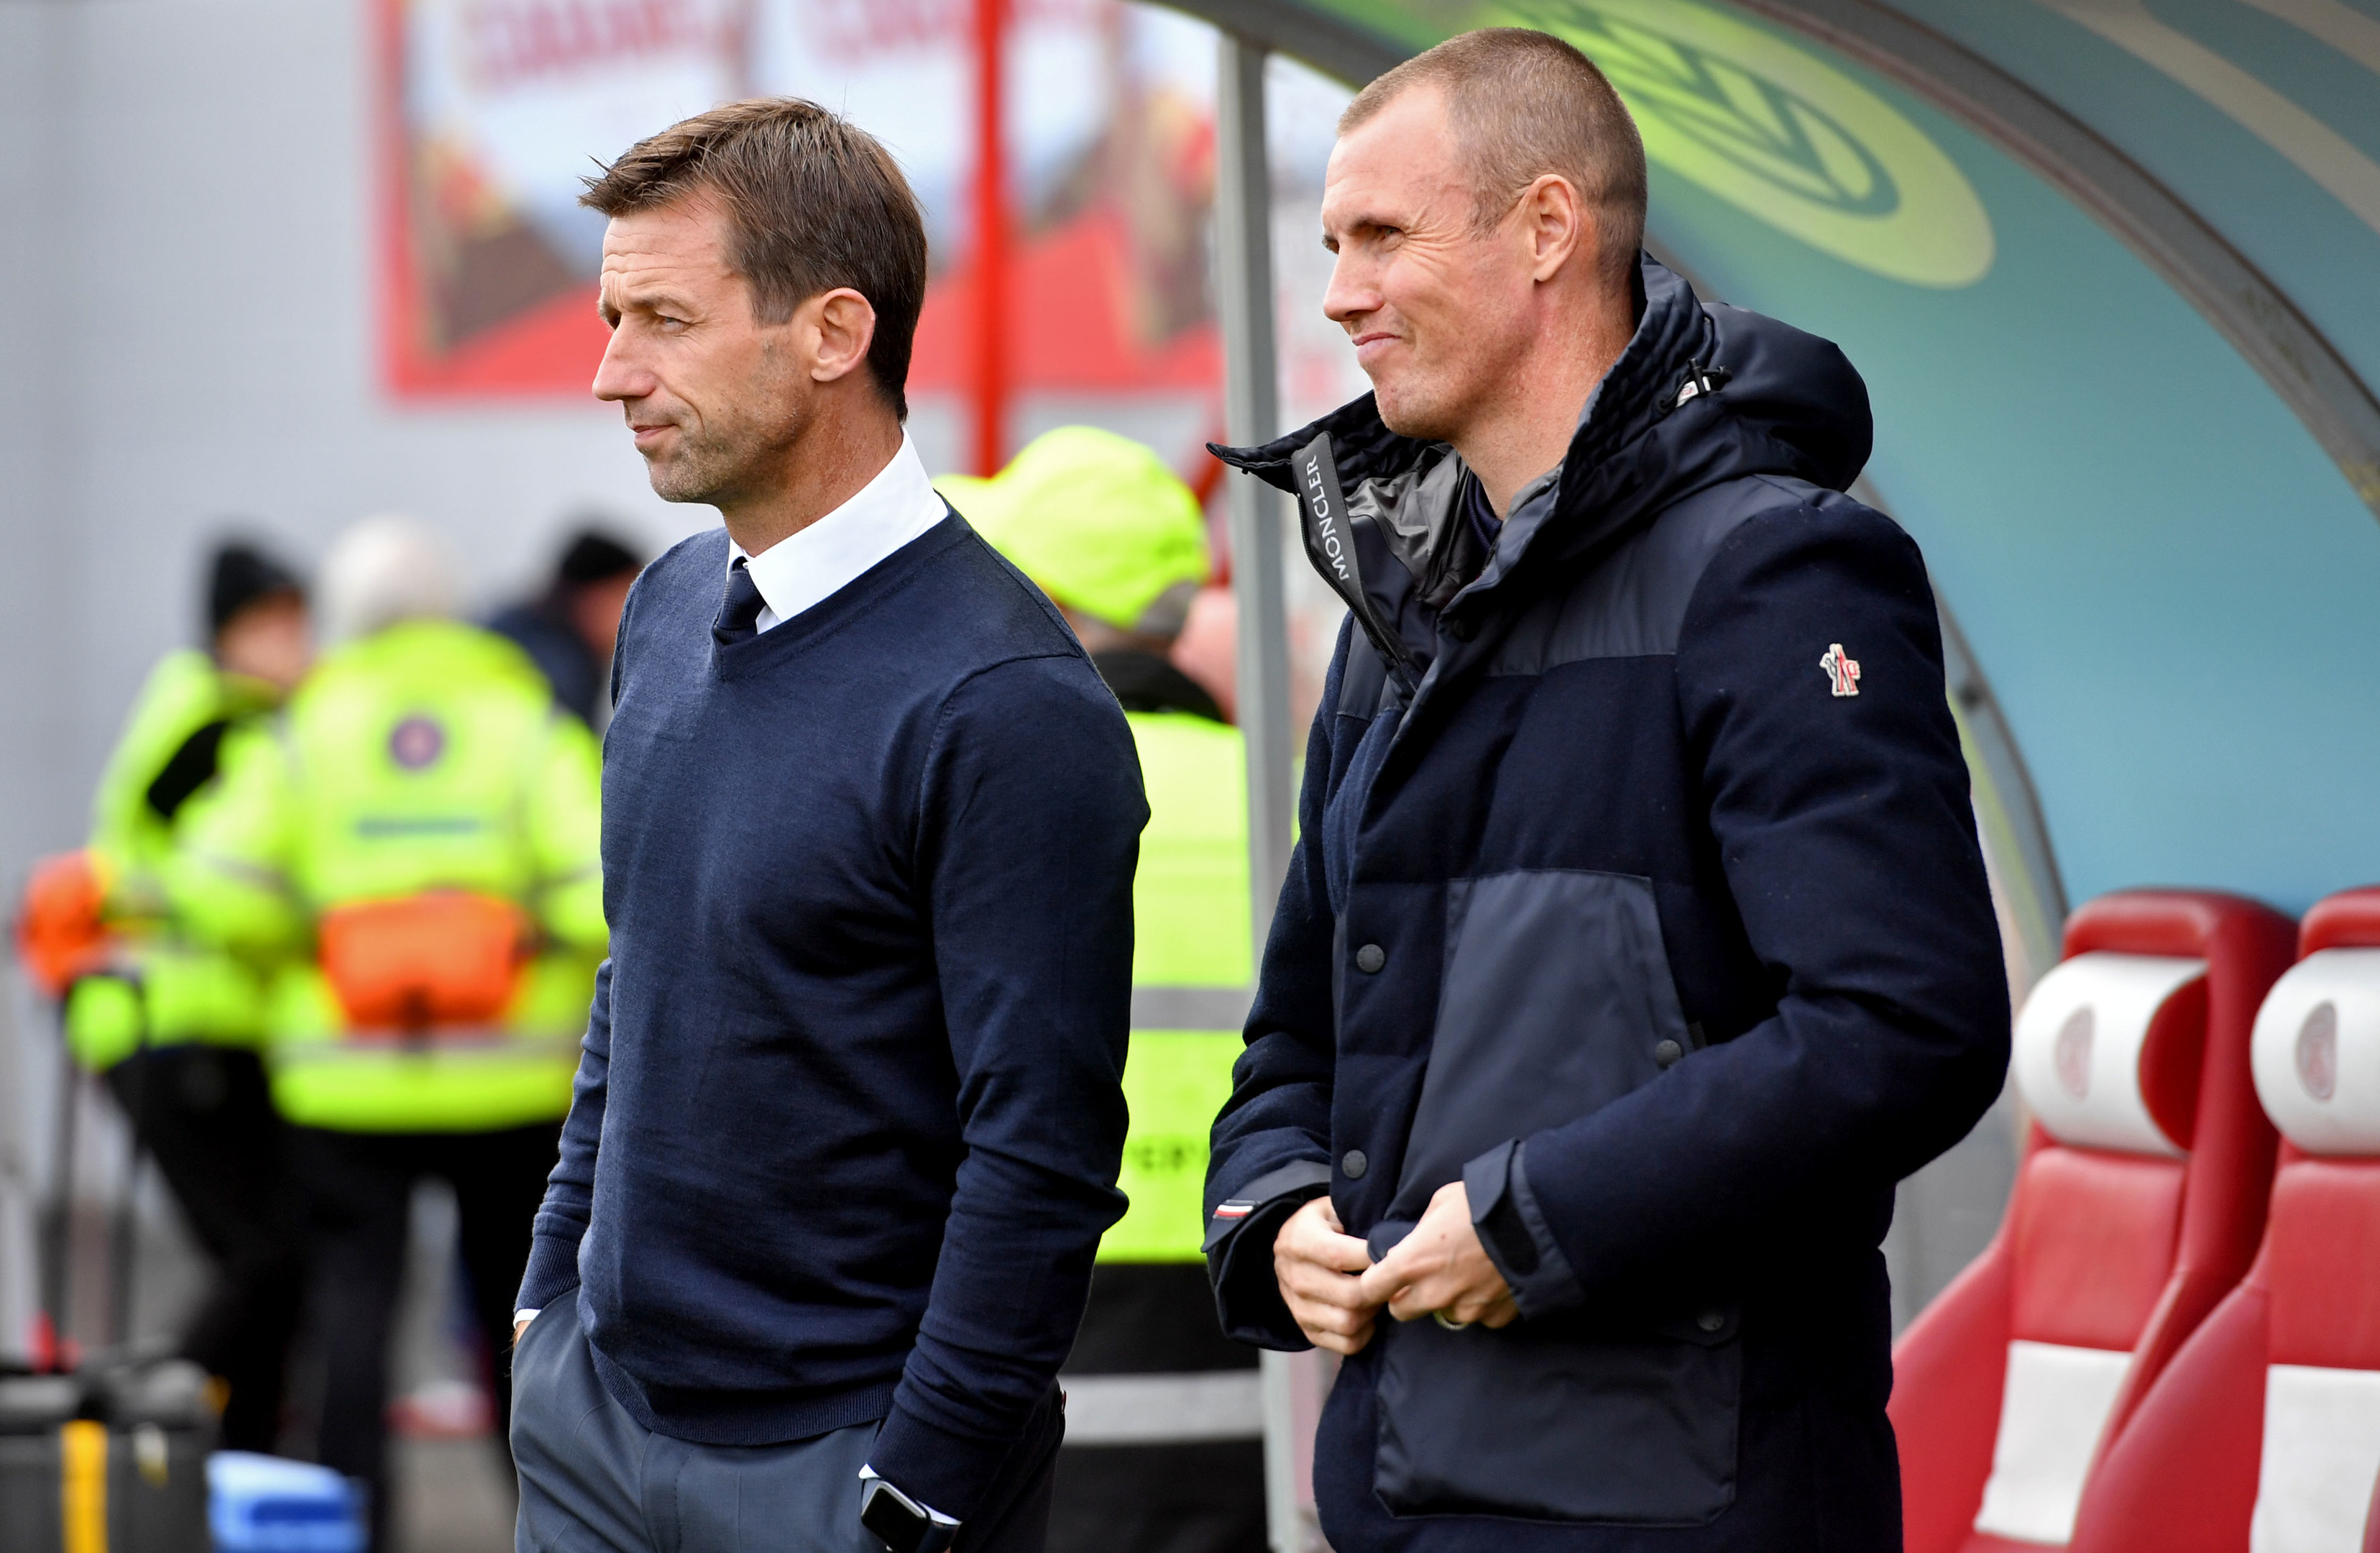 Will Neil McCann bring Kenny Miller straight back into his team?